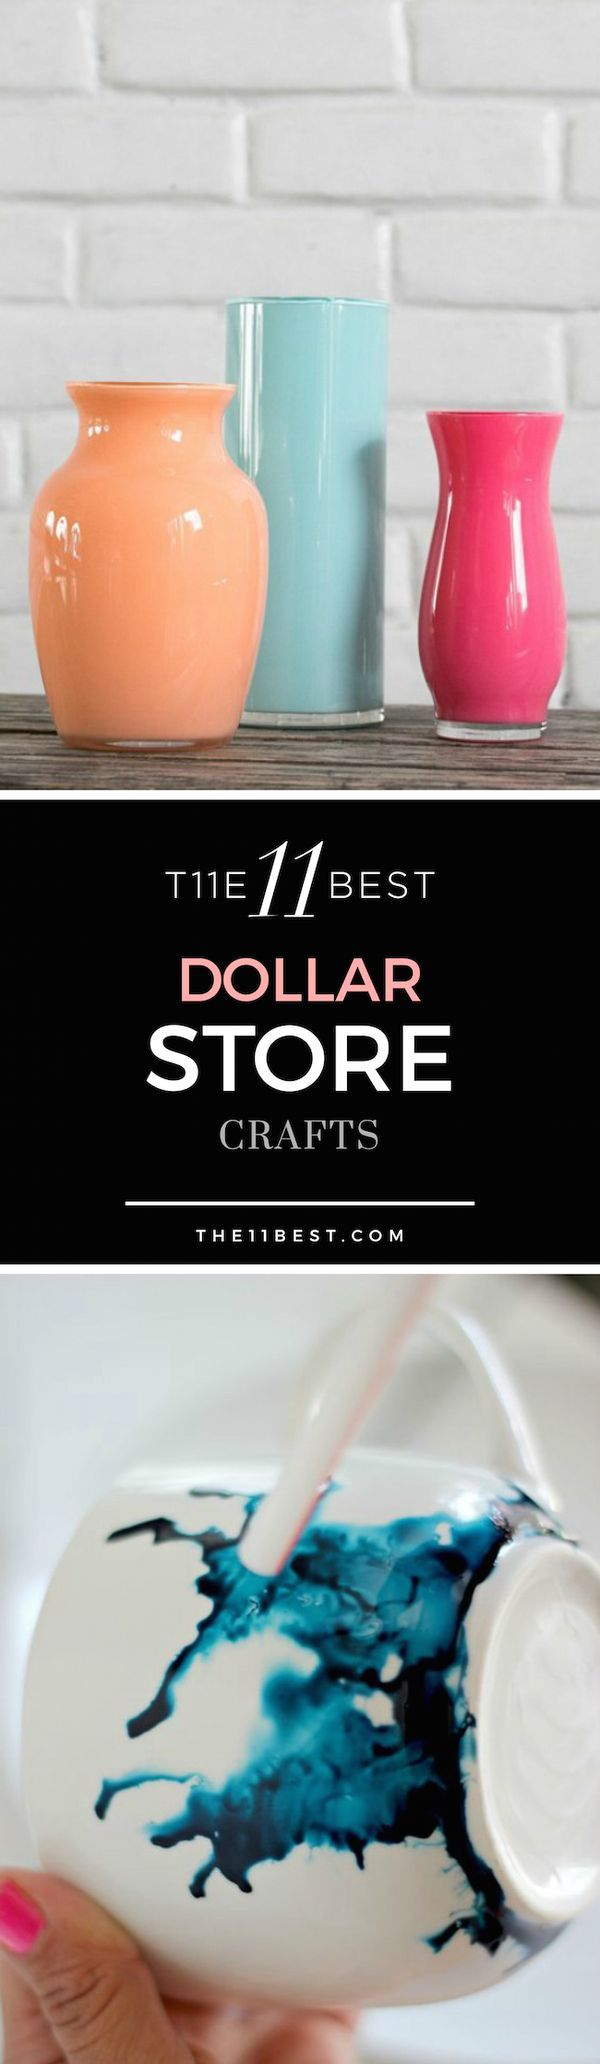 Want your next DIY project? Here are 11 fun crafts that you can make using items from the dollar store that look amazing when you're done!